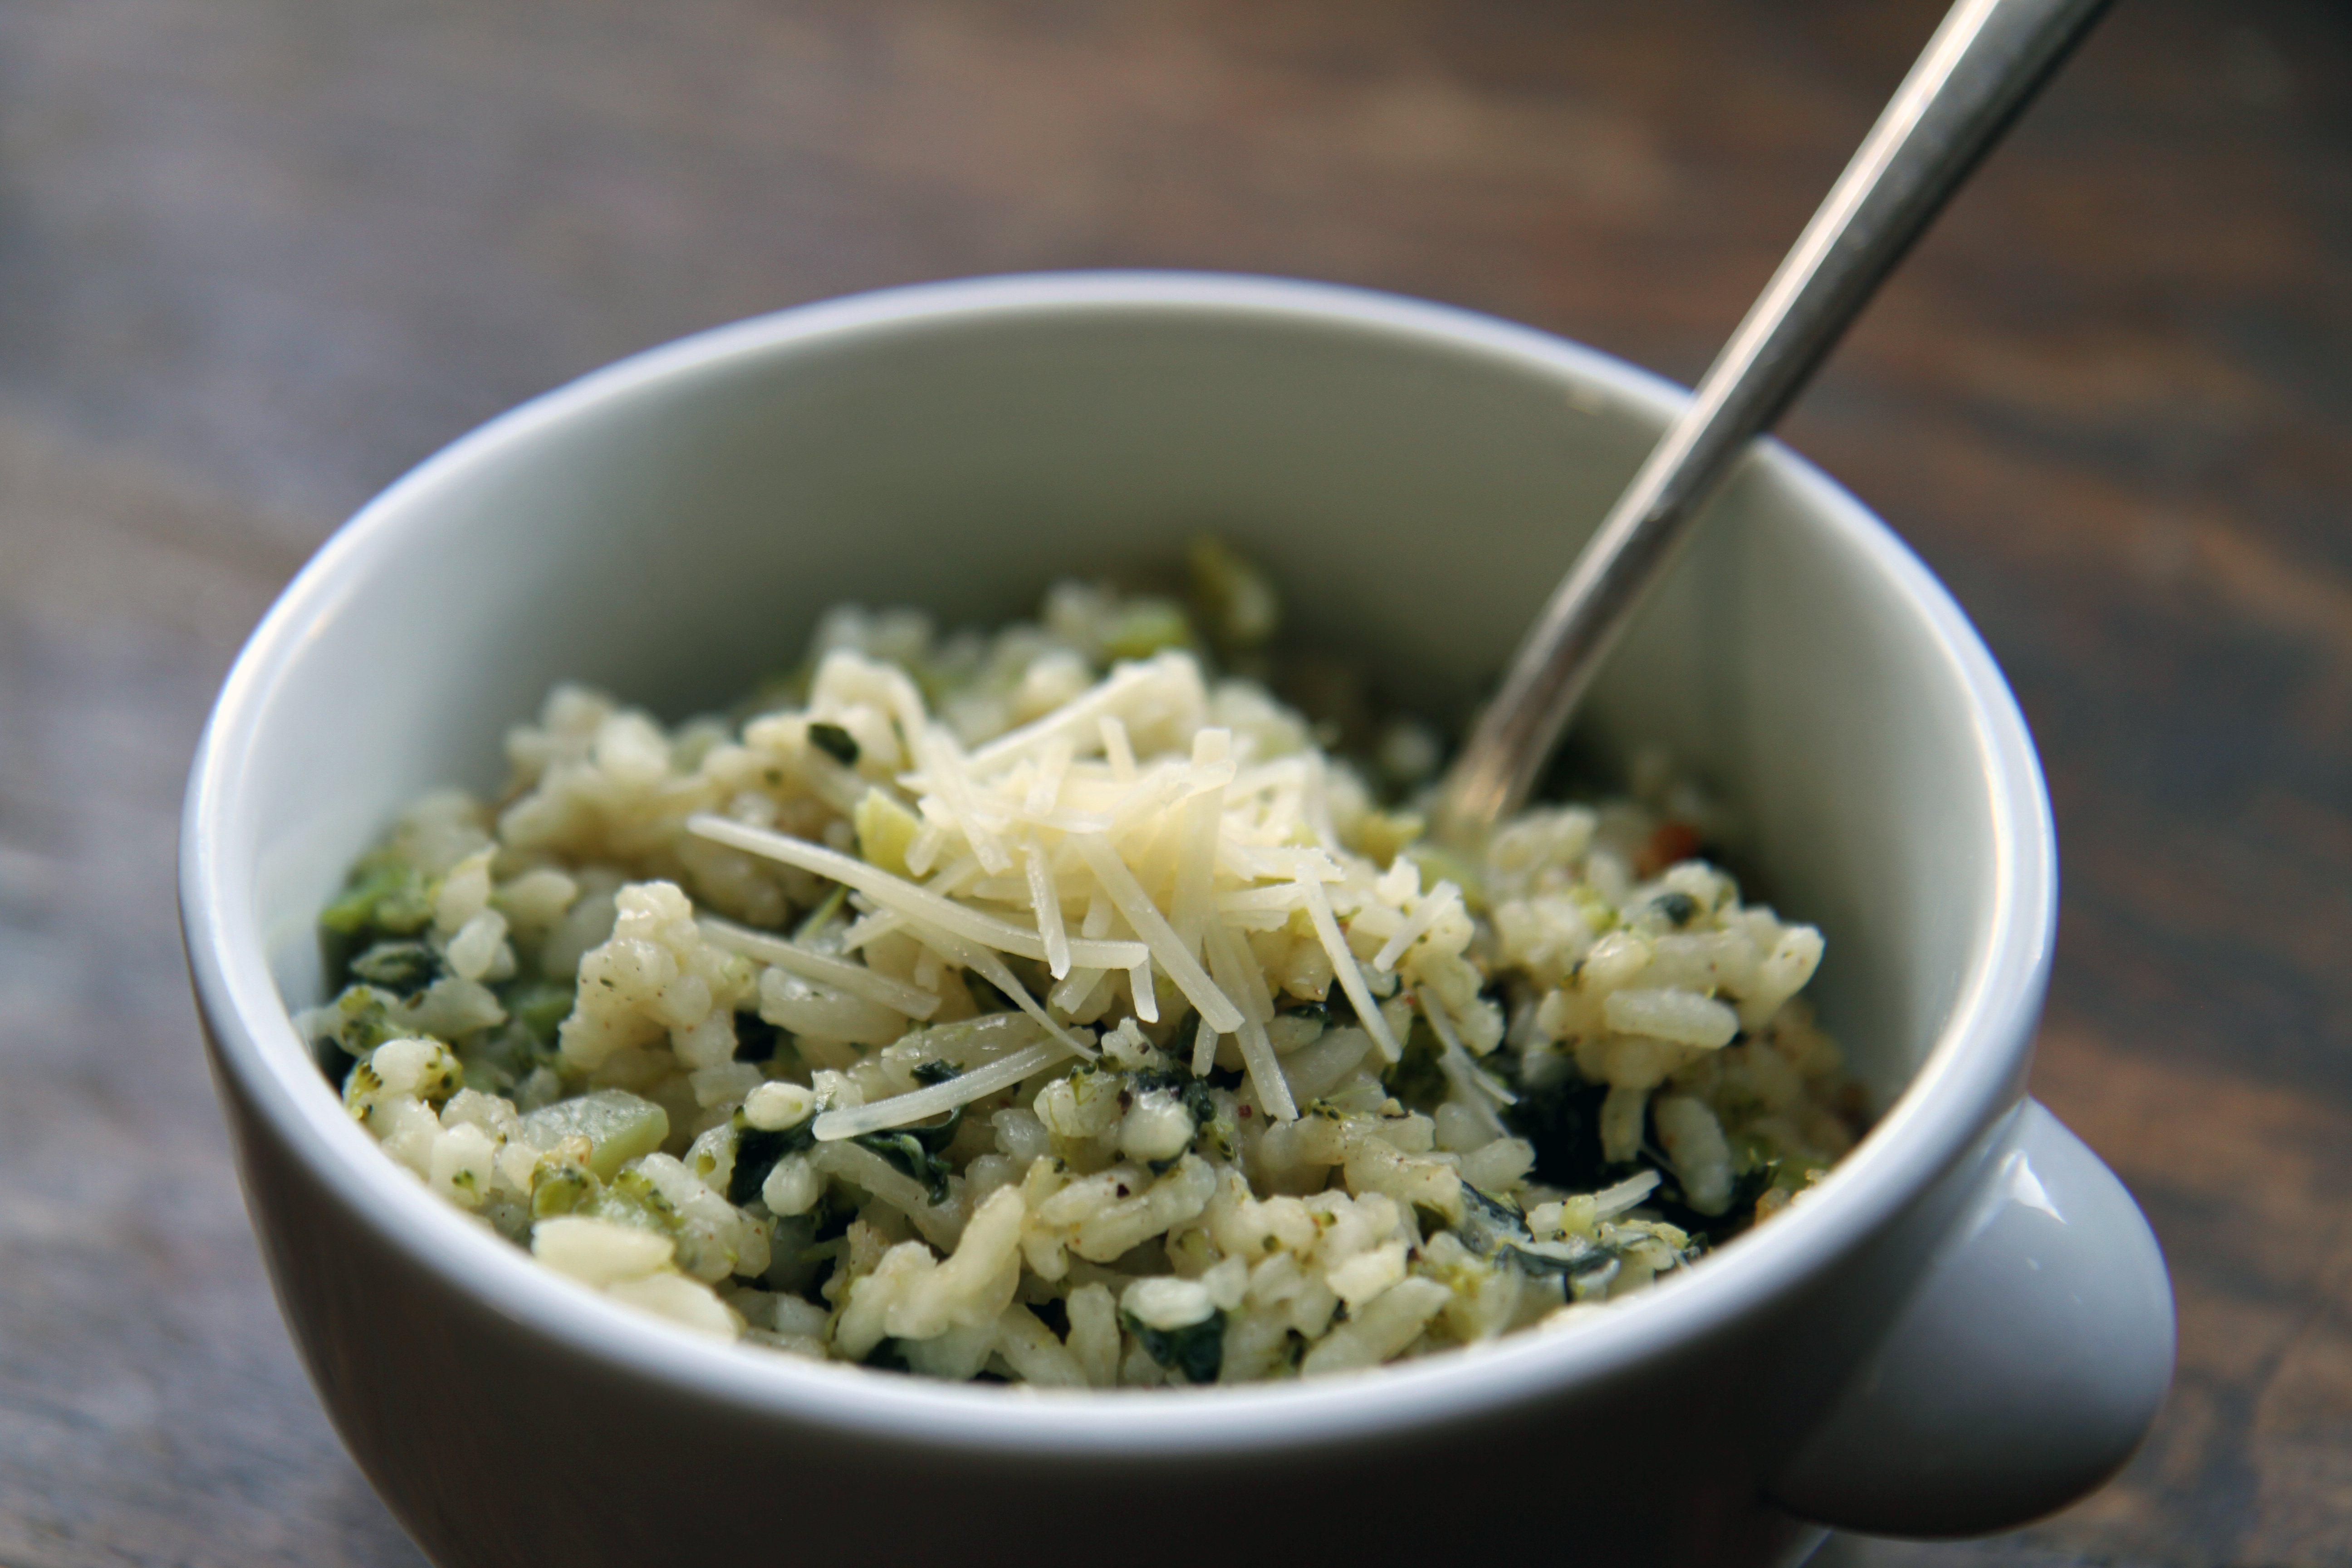 Baked Broccoli and Spinach Risotto